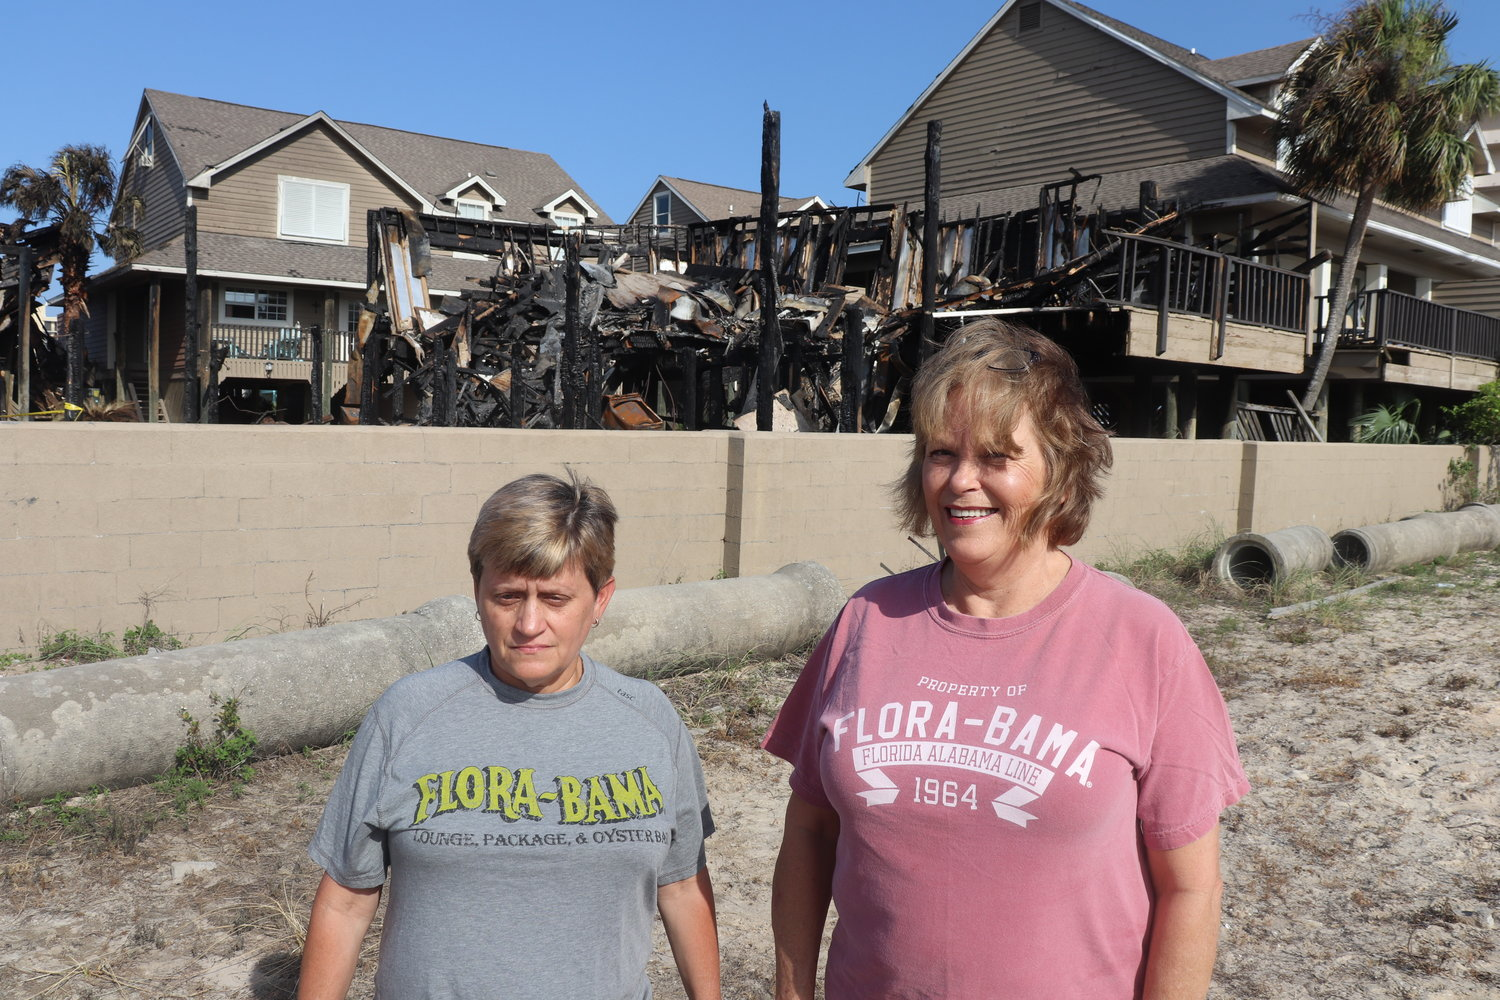 Robin Lusk and Janice Curtis say they were in the right place at the right time to help residents escape the fire before firefighters arrived.